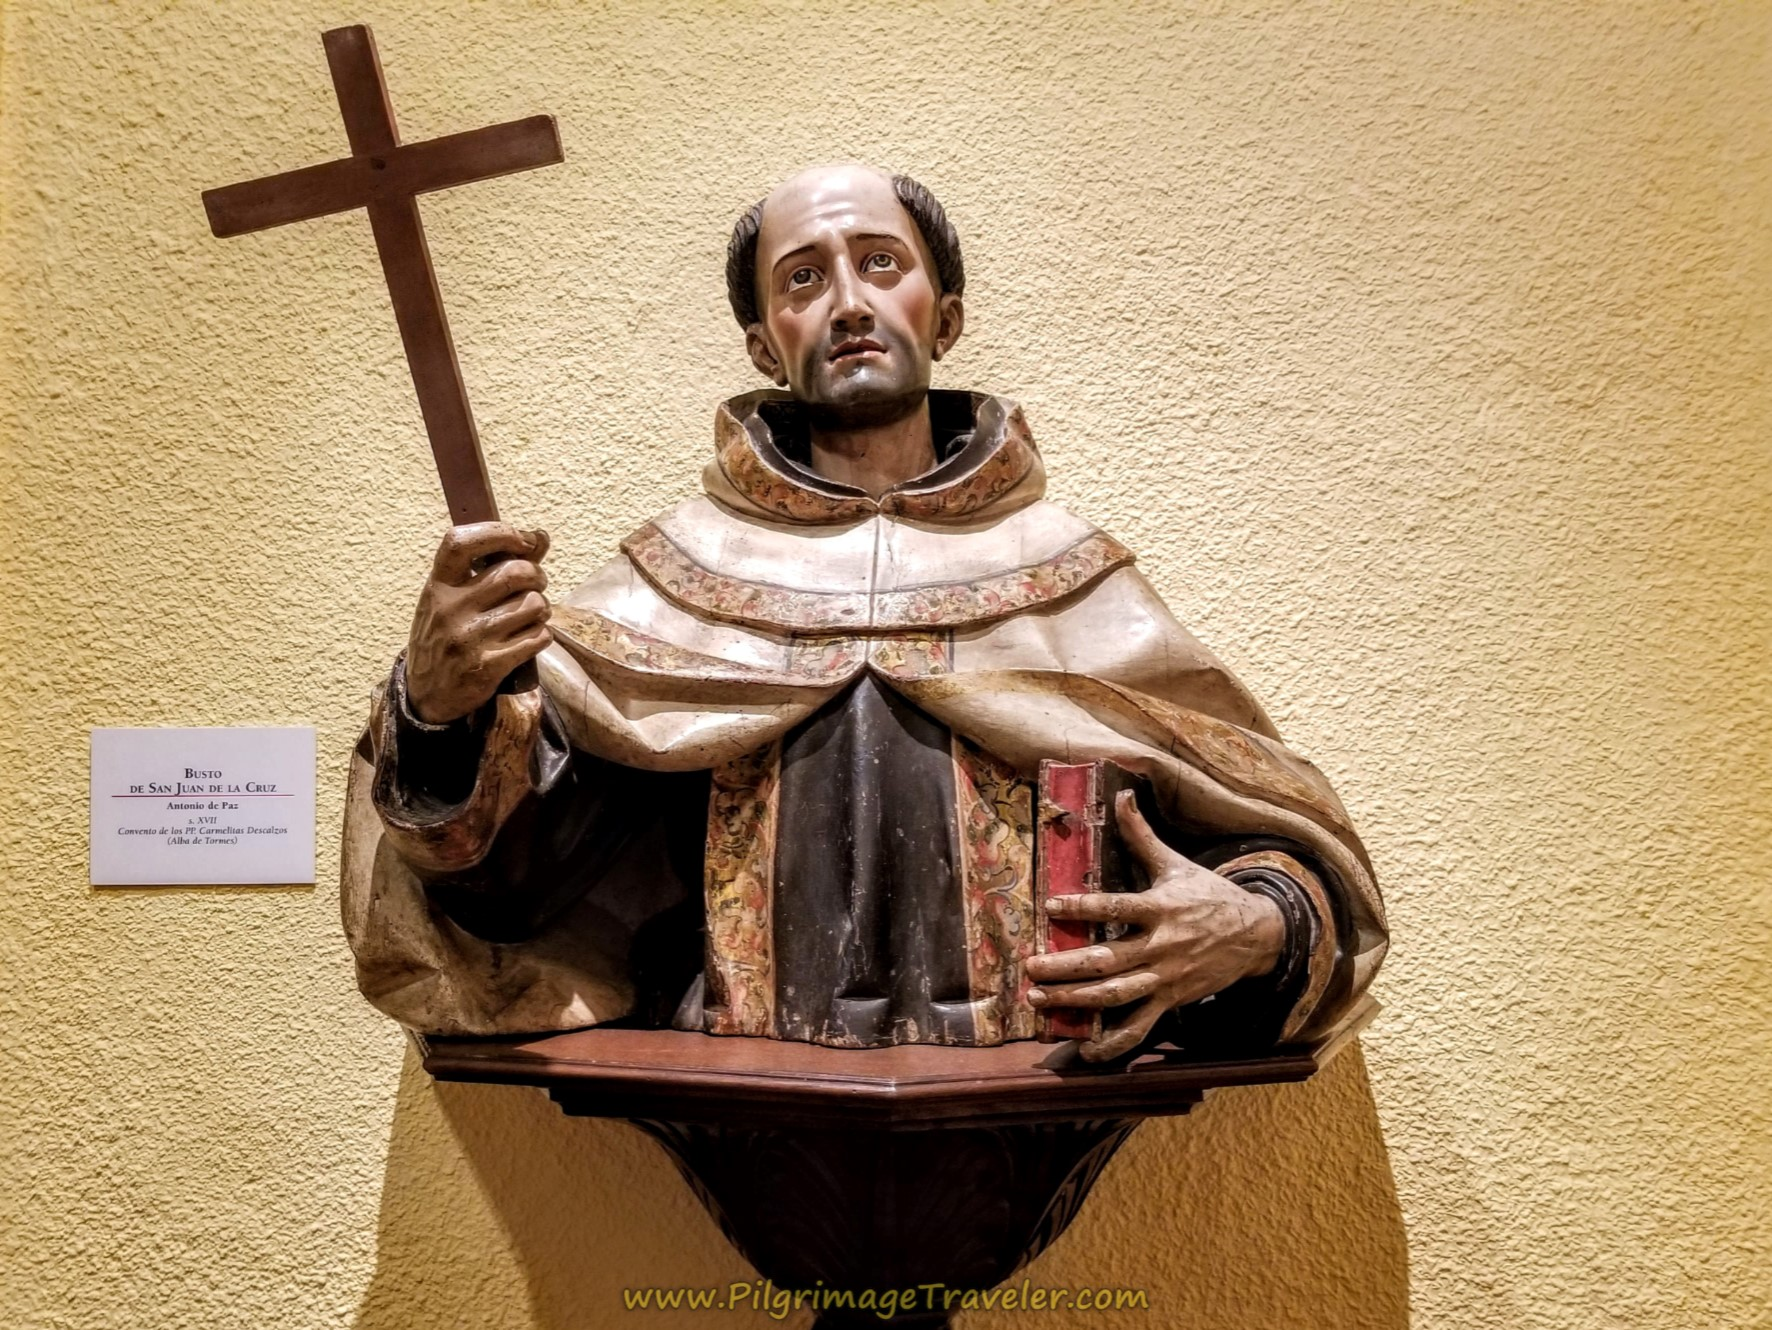 Carving of St. John of the Cross, Centro Teresiano Sanjuanista, Alba de Tormes